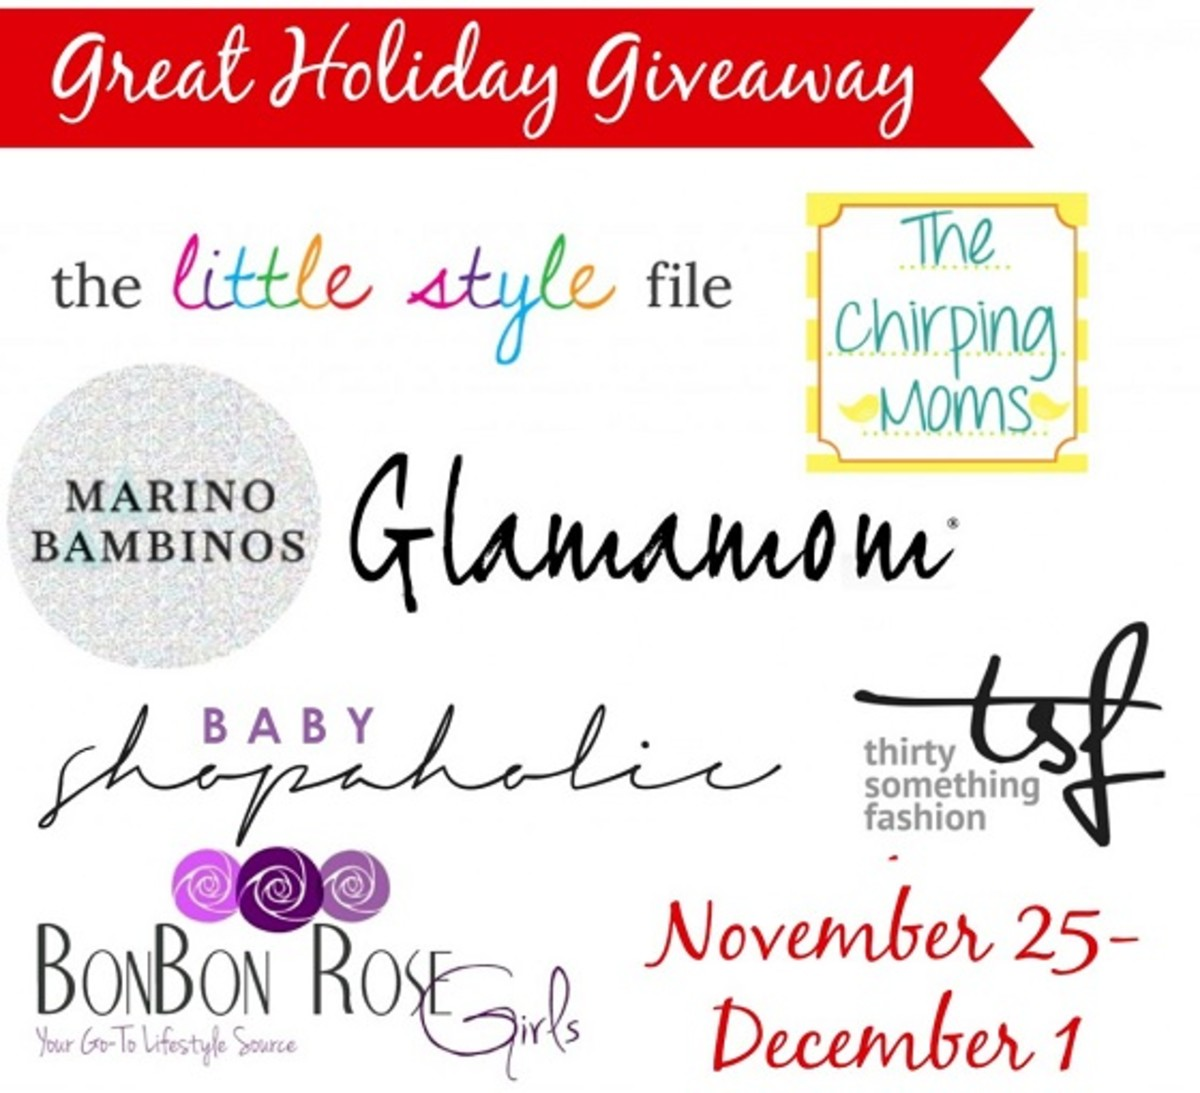 Great Holiday Giveaway Sponsors